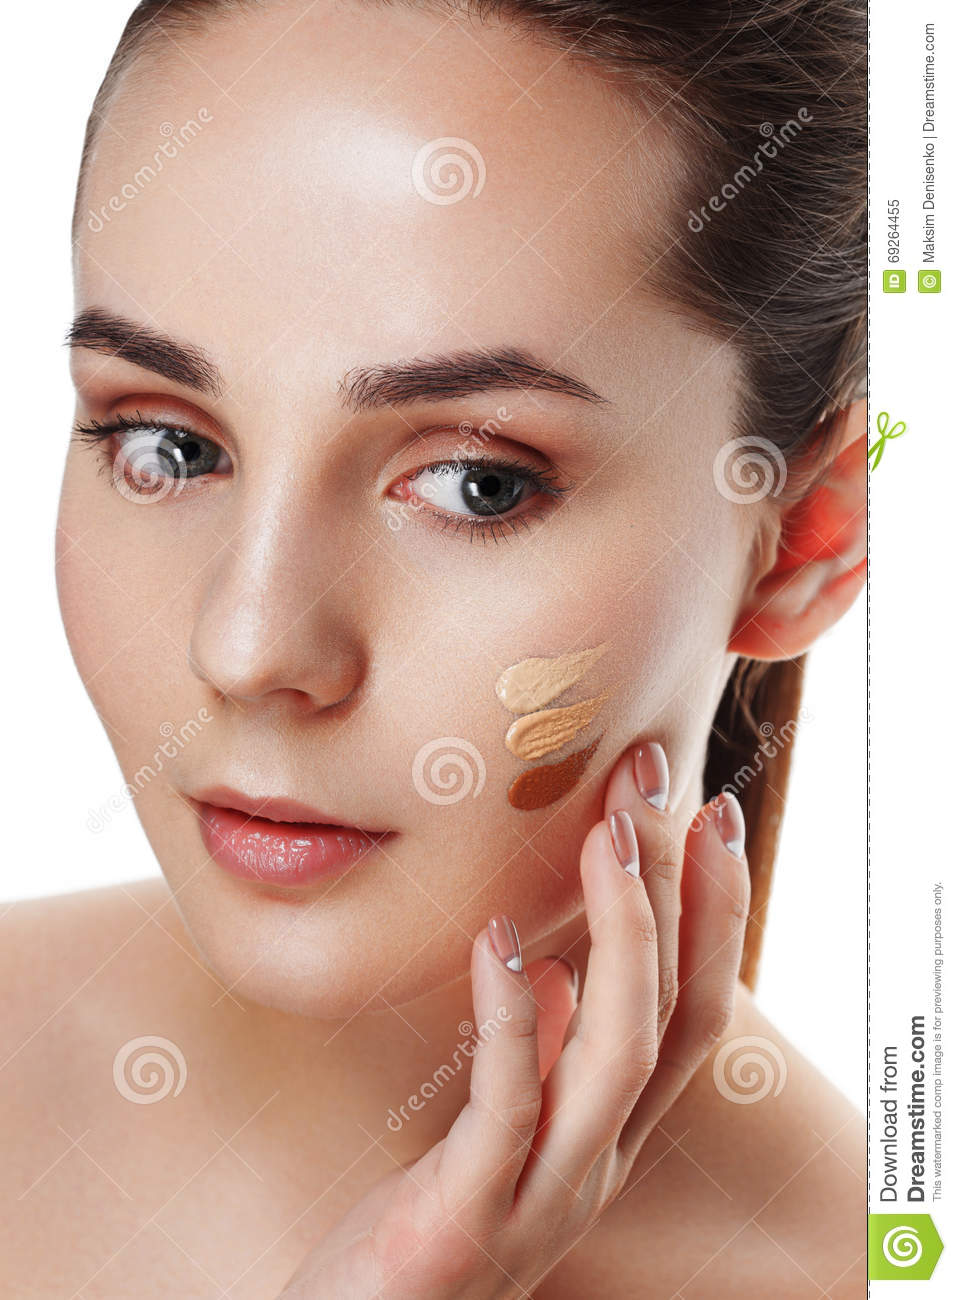 Beauty Girl Try to Different tones of Foundation Concealer. Natural Makeup for Brunette Woman with Beautiful Face. Makeover. Per